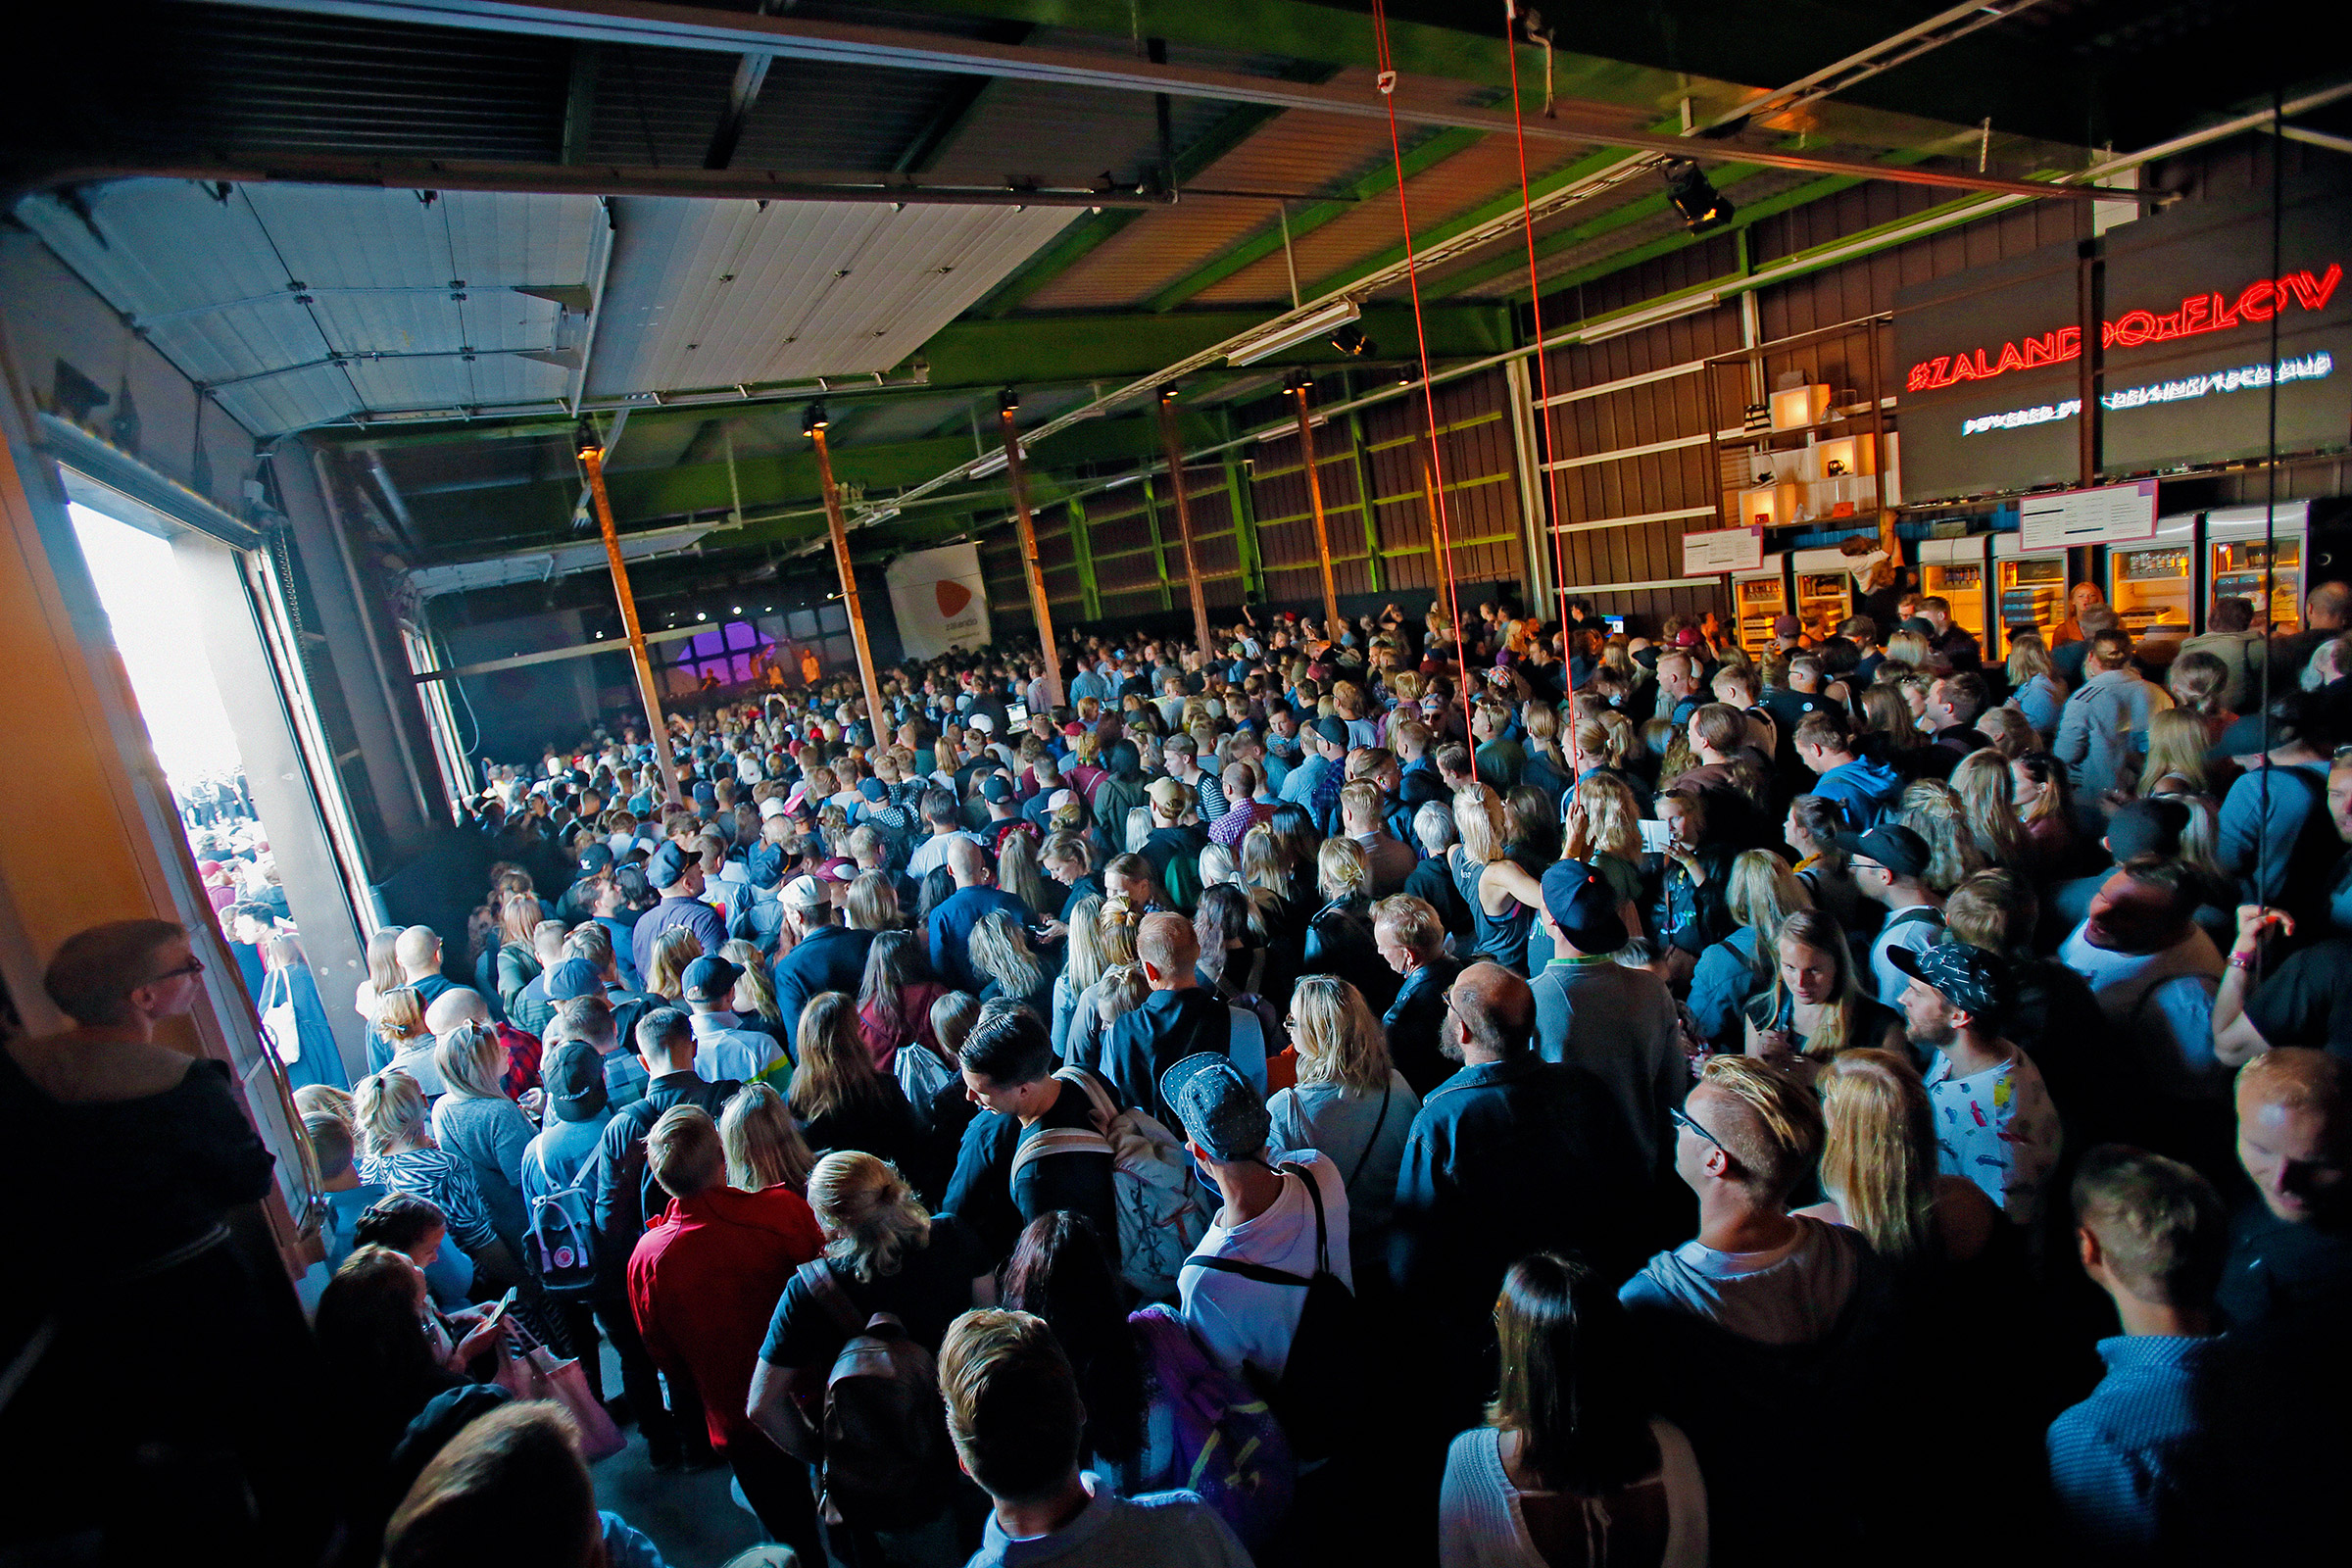 Zalando Factory stage and audience